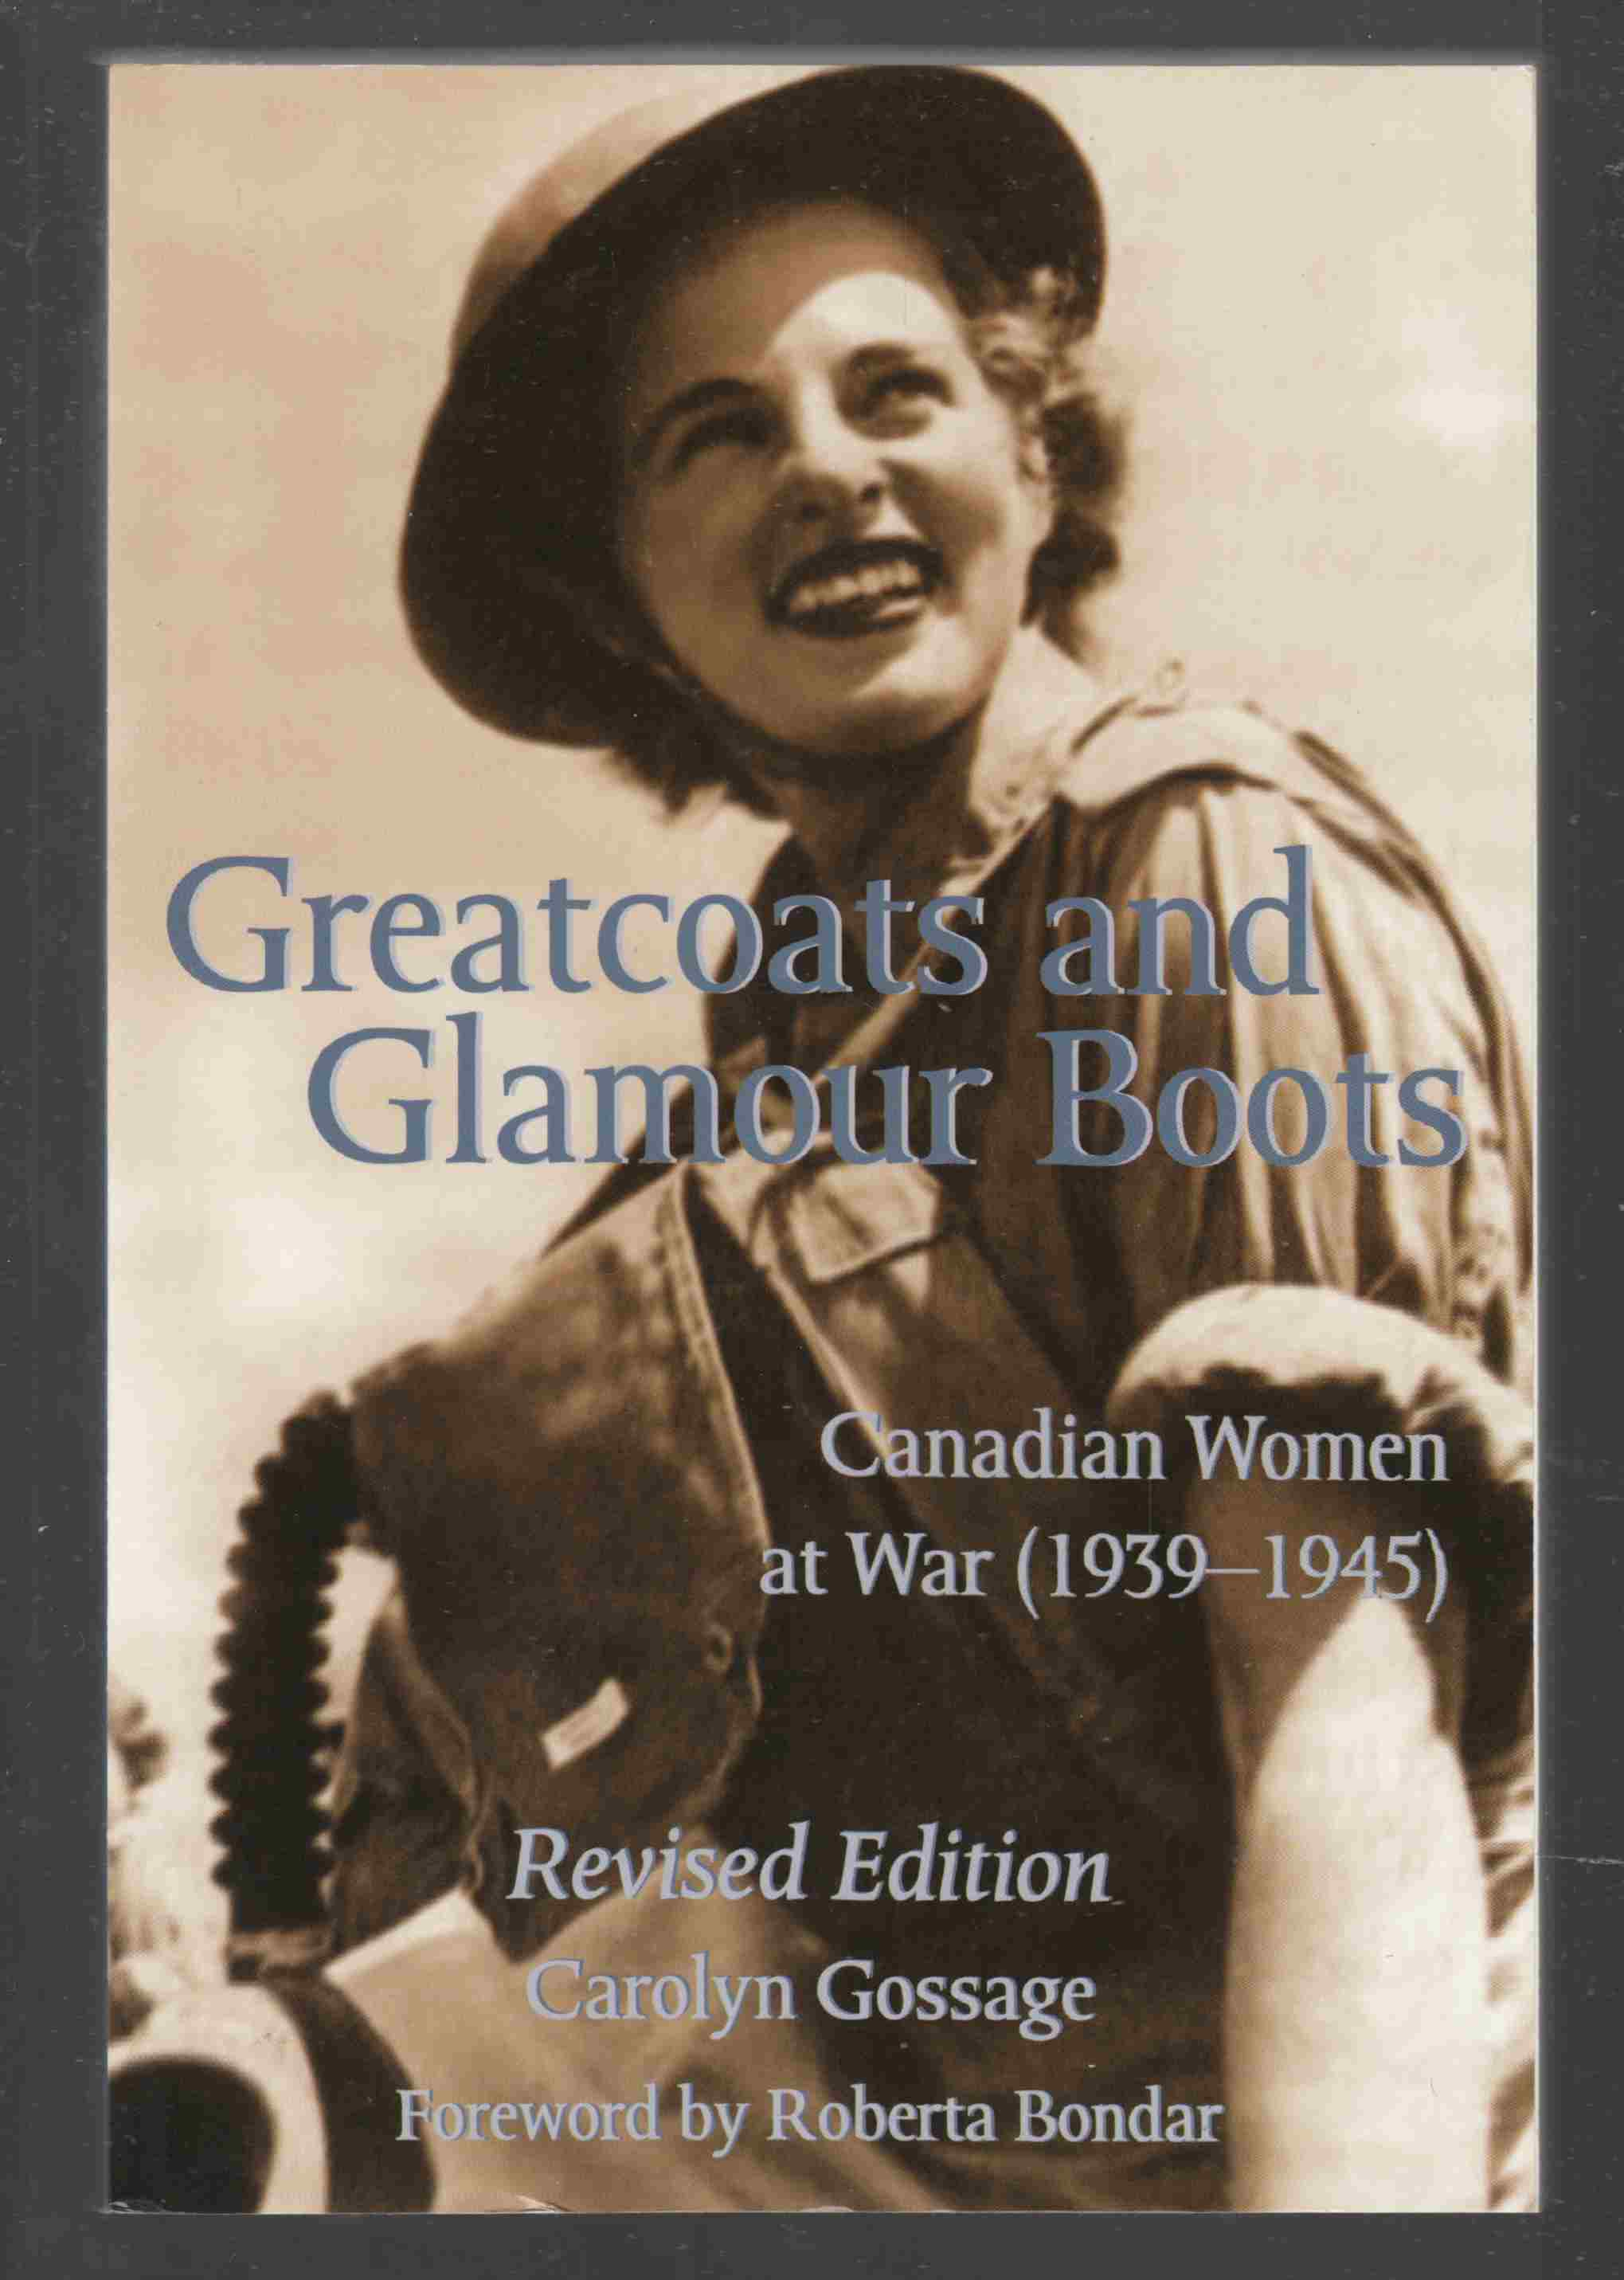 Image for Greatcoats and Glamour Boots Canadian Women At War (1939-1945)